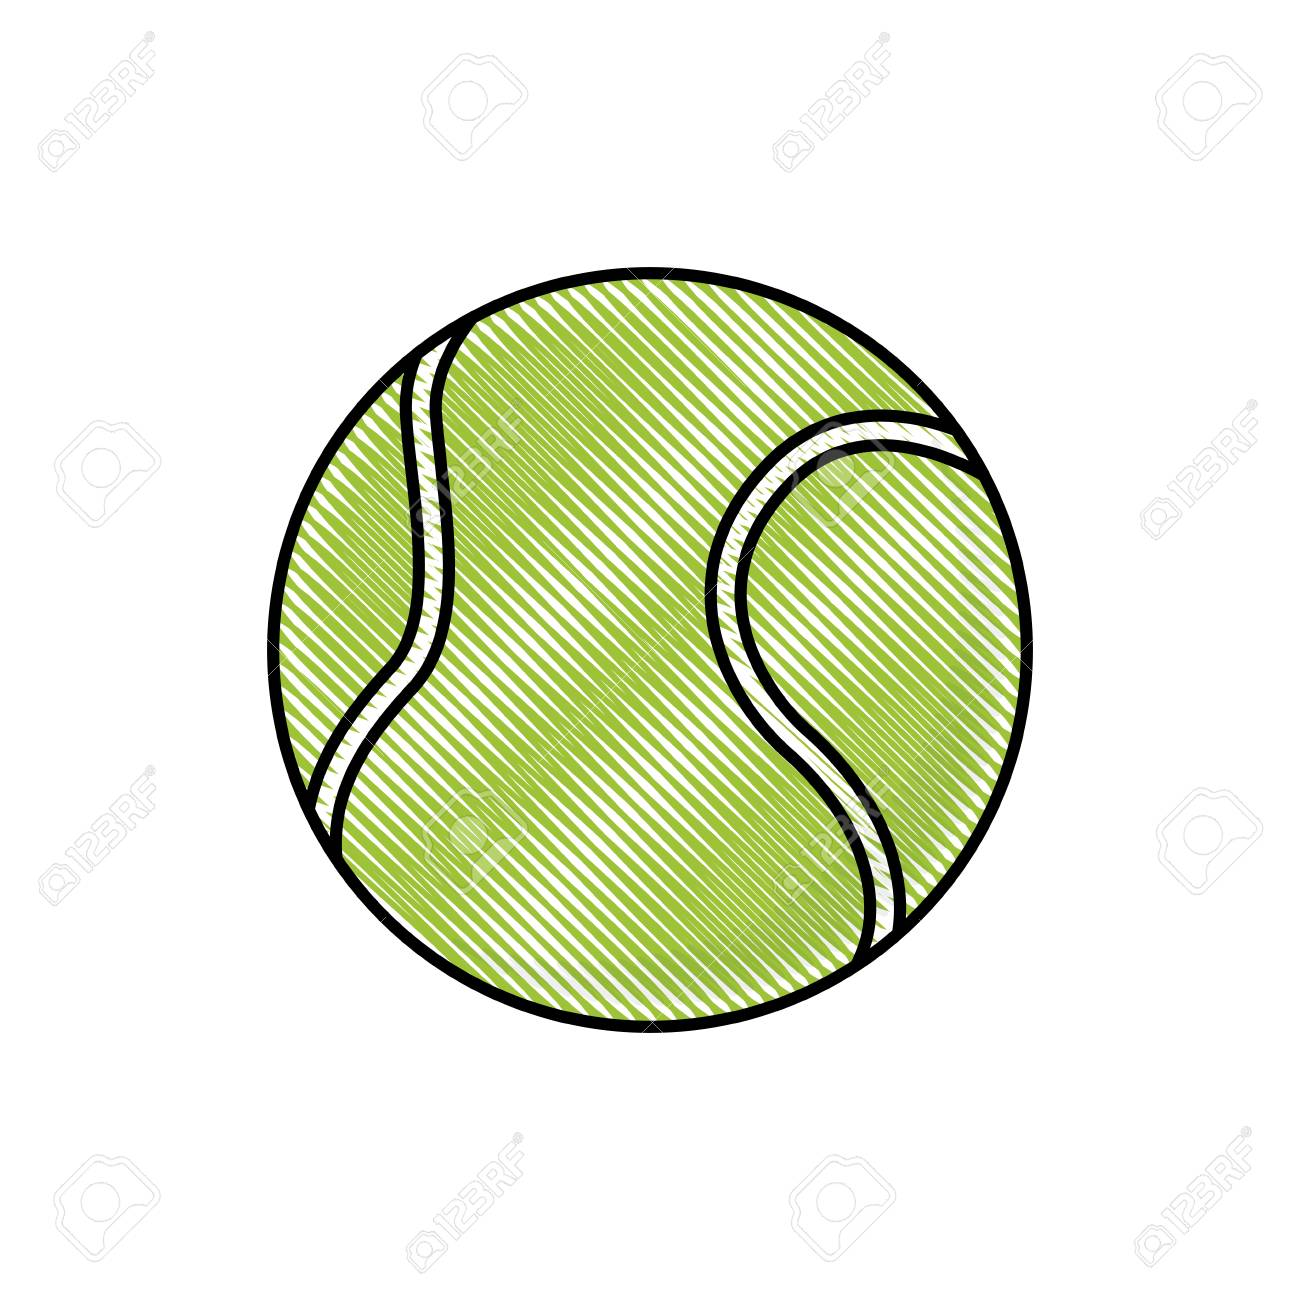 1300x1300 Drawing Tennis Ball Sport Competition Element Vector Illustration